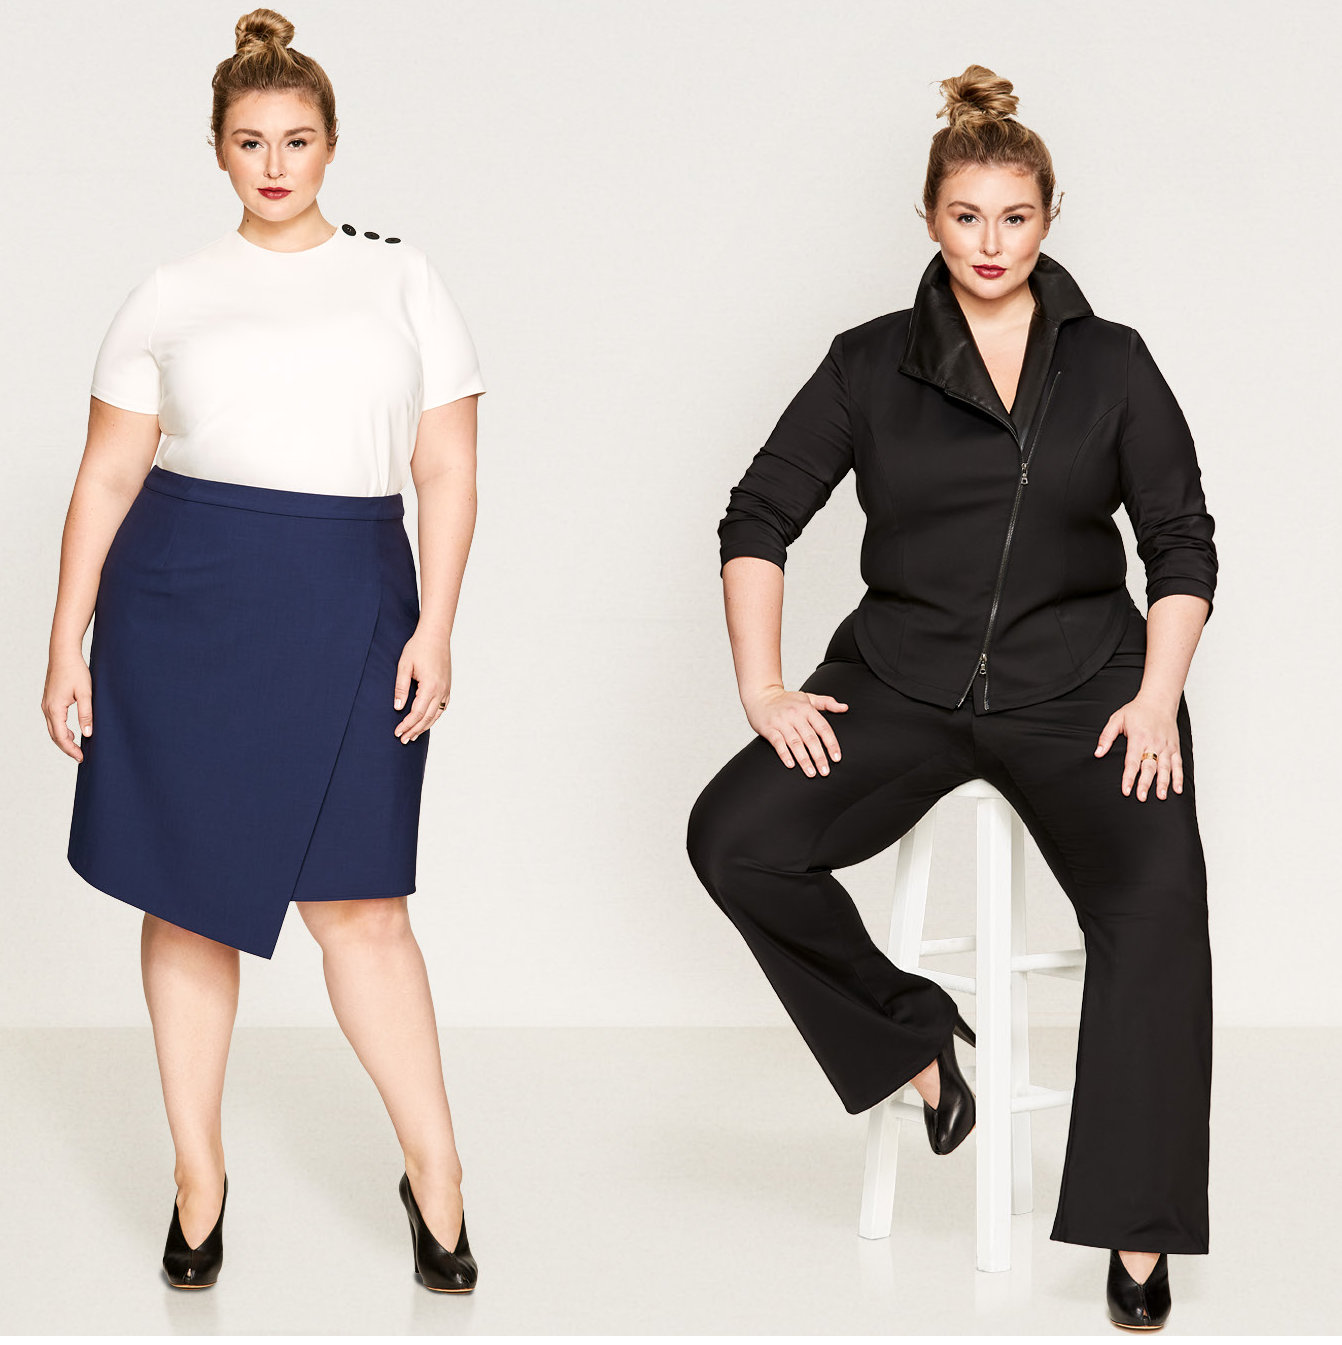 Luxury Plus Size Work Clothing- Pari Passu